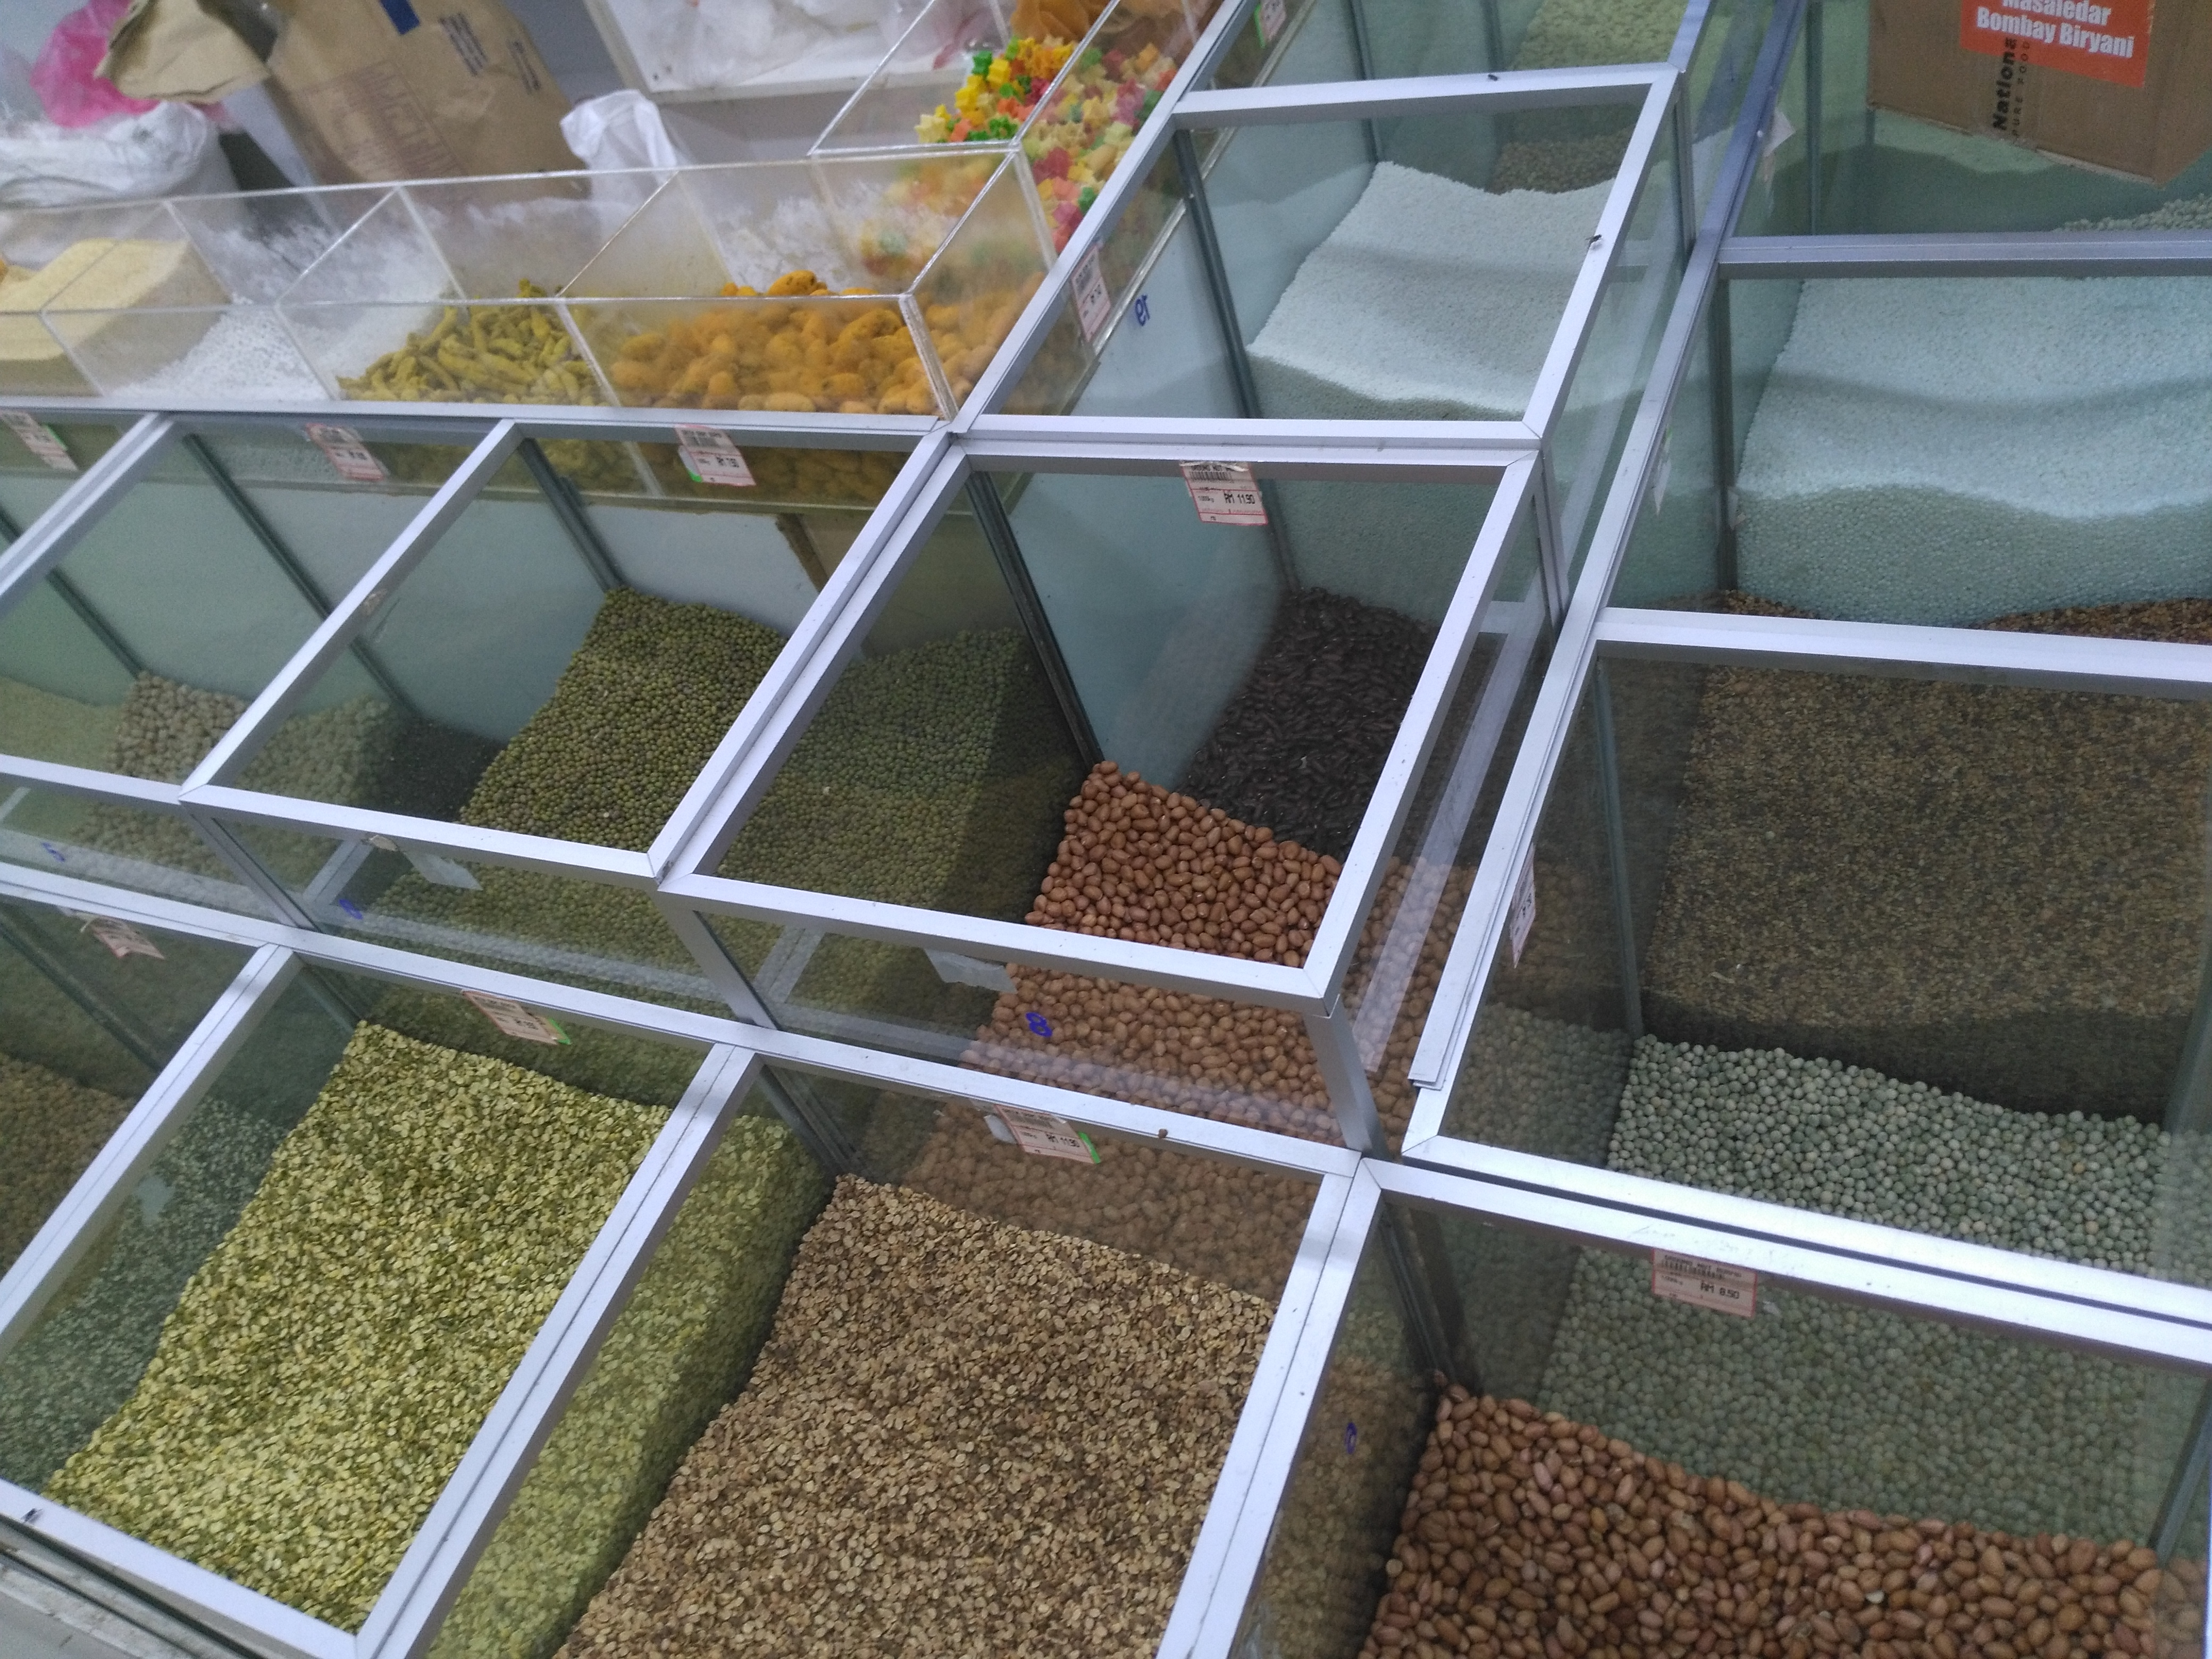 An assortment of beans and lentils at a market.